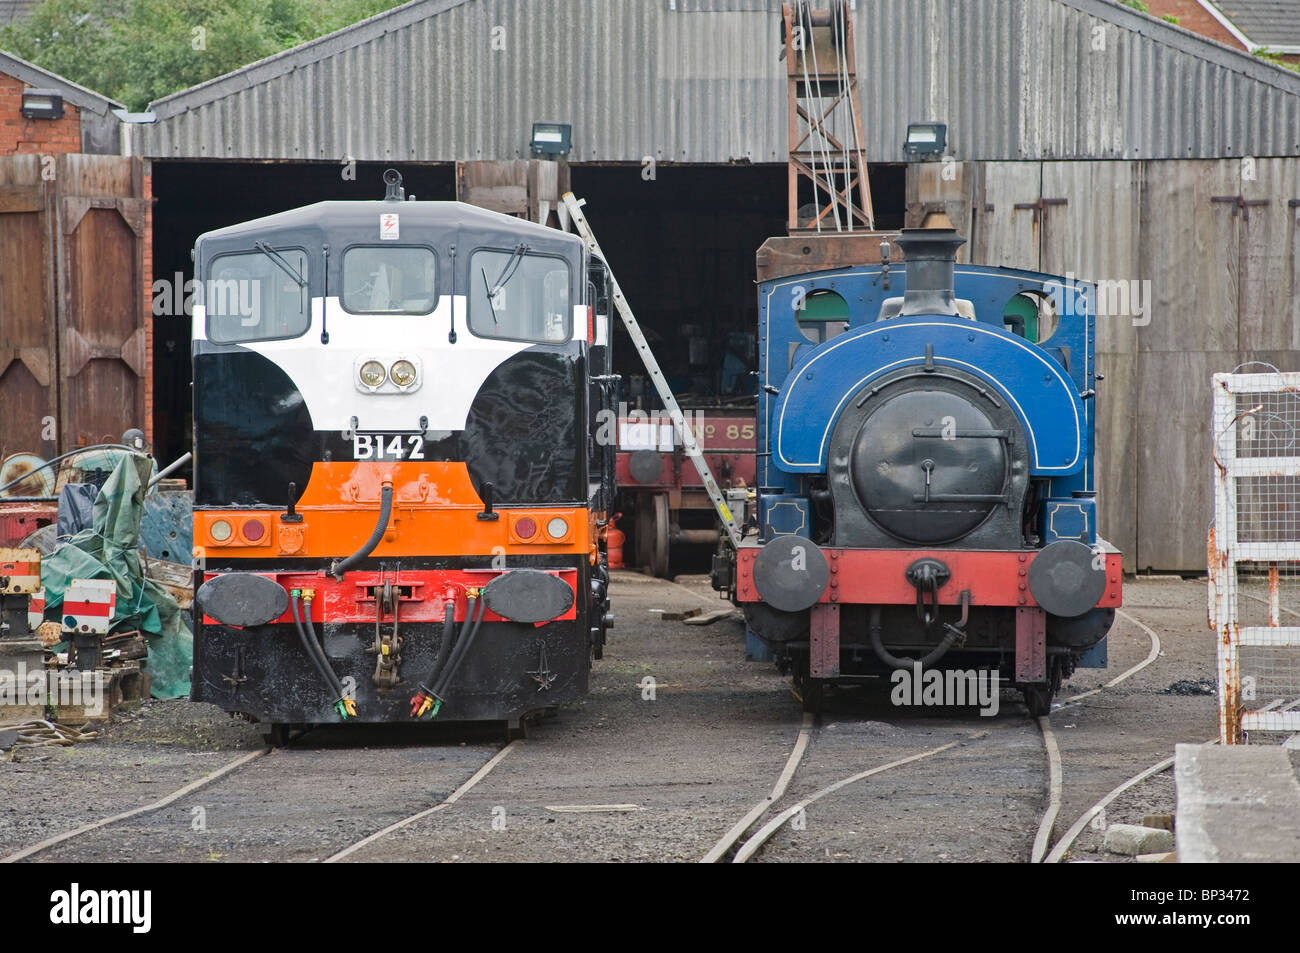 Two restored locomotives at th Railway Preservation of Ireland's workshops at Whitehead, Northern Ireland. Stock Photo